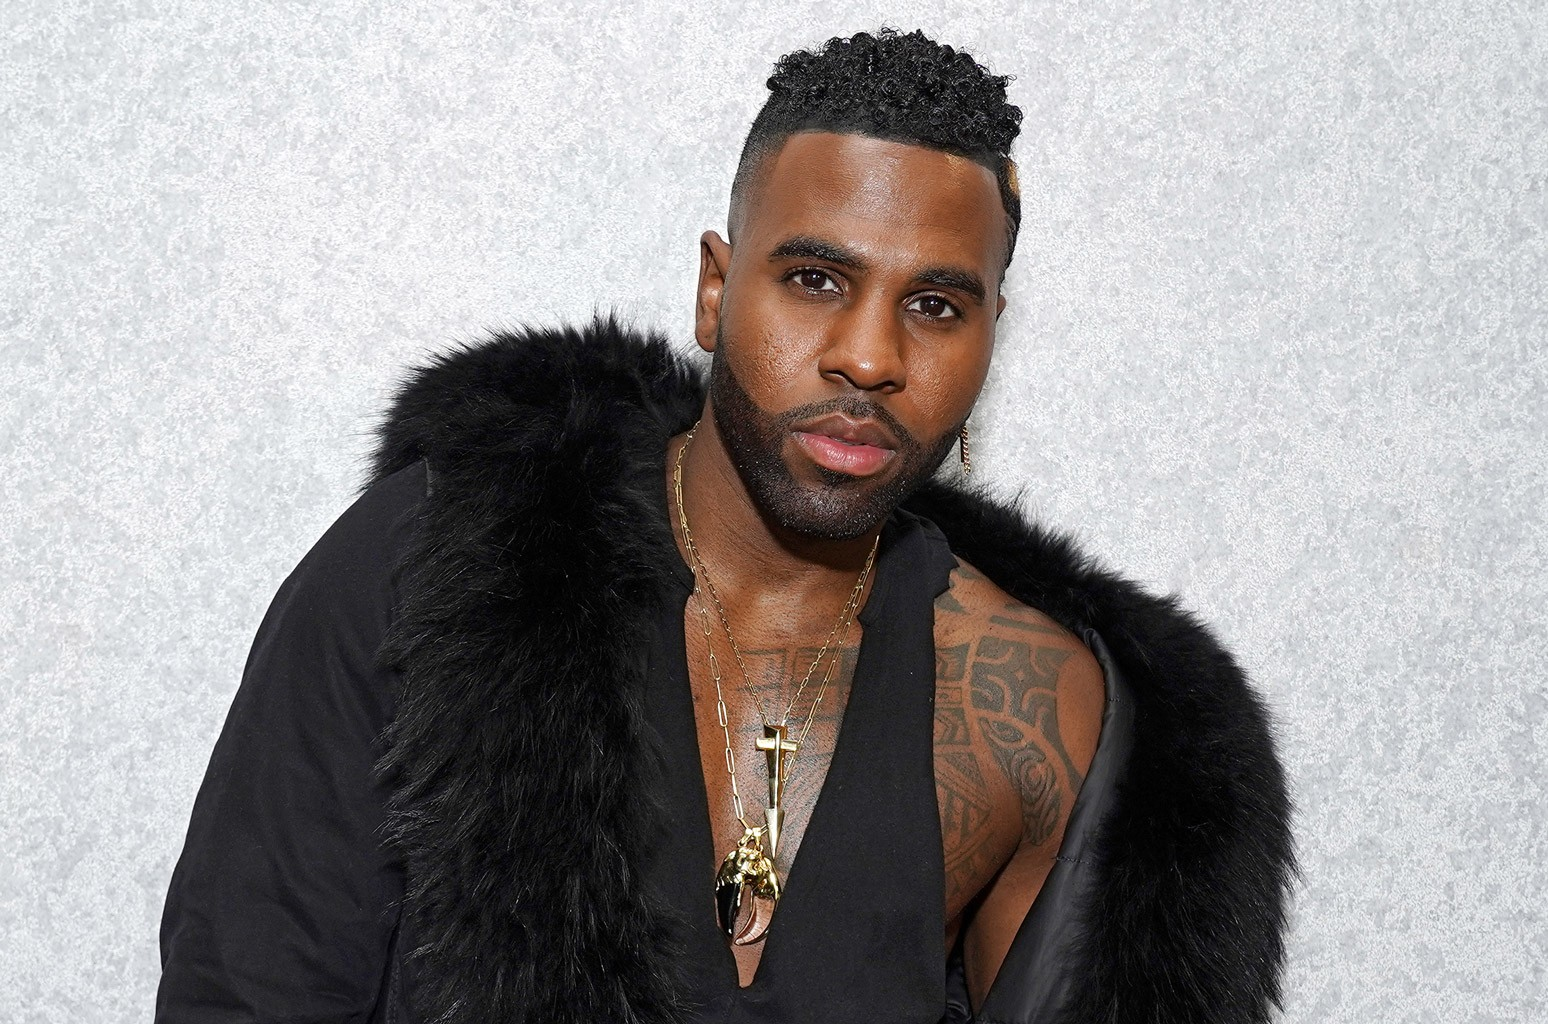 Jason Derulo & Girlfriend Jena Frumes Expecting a Baby Together